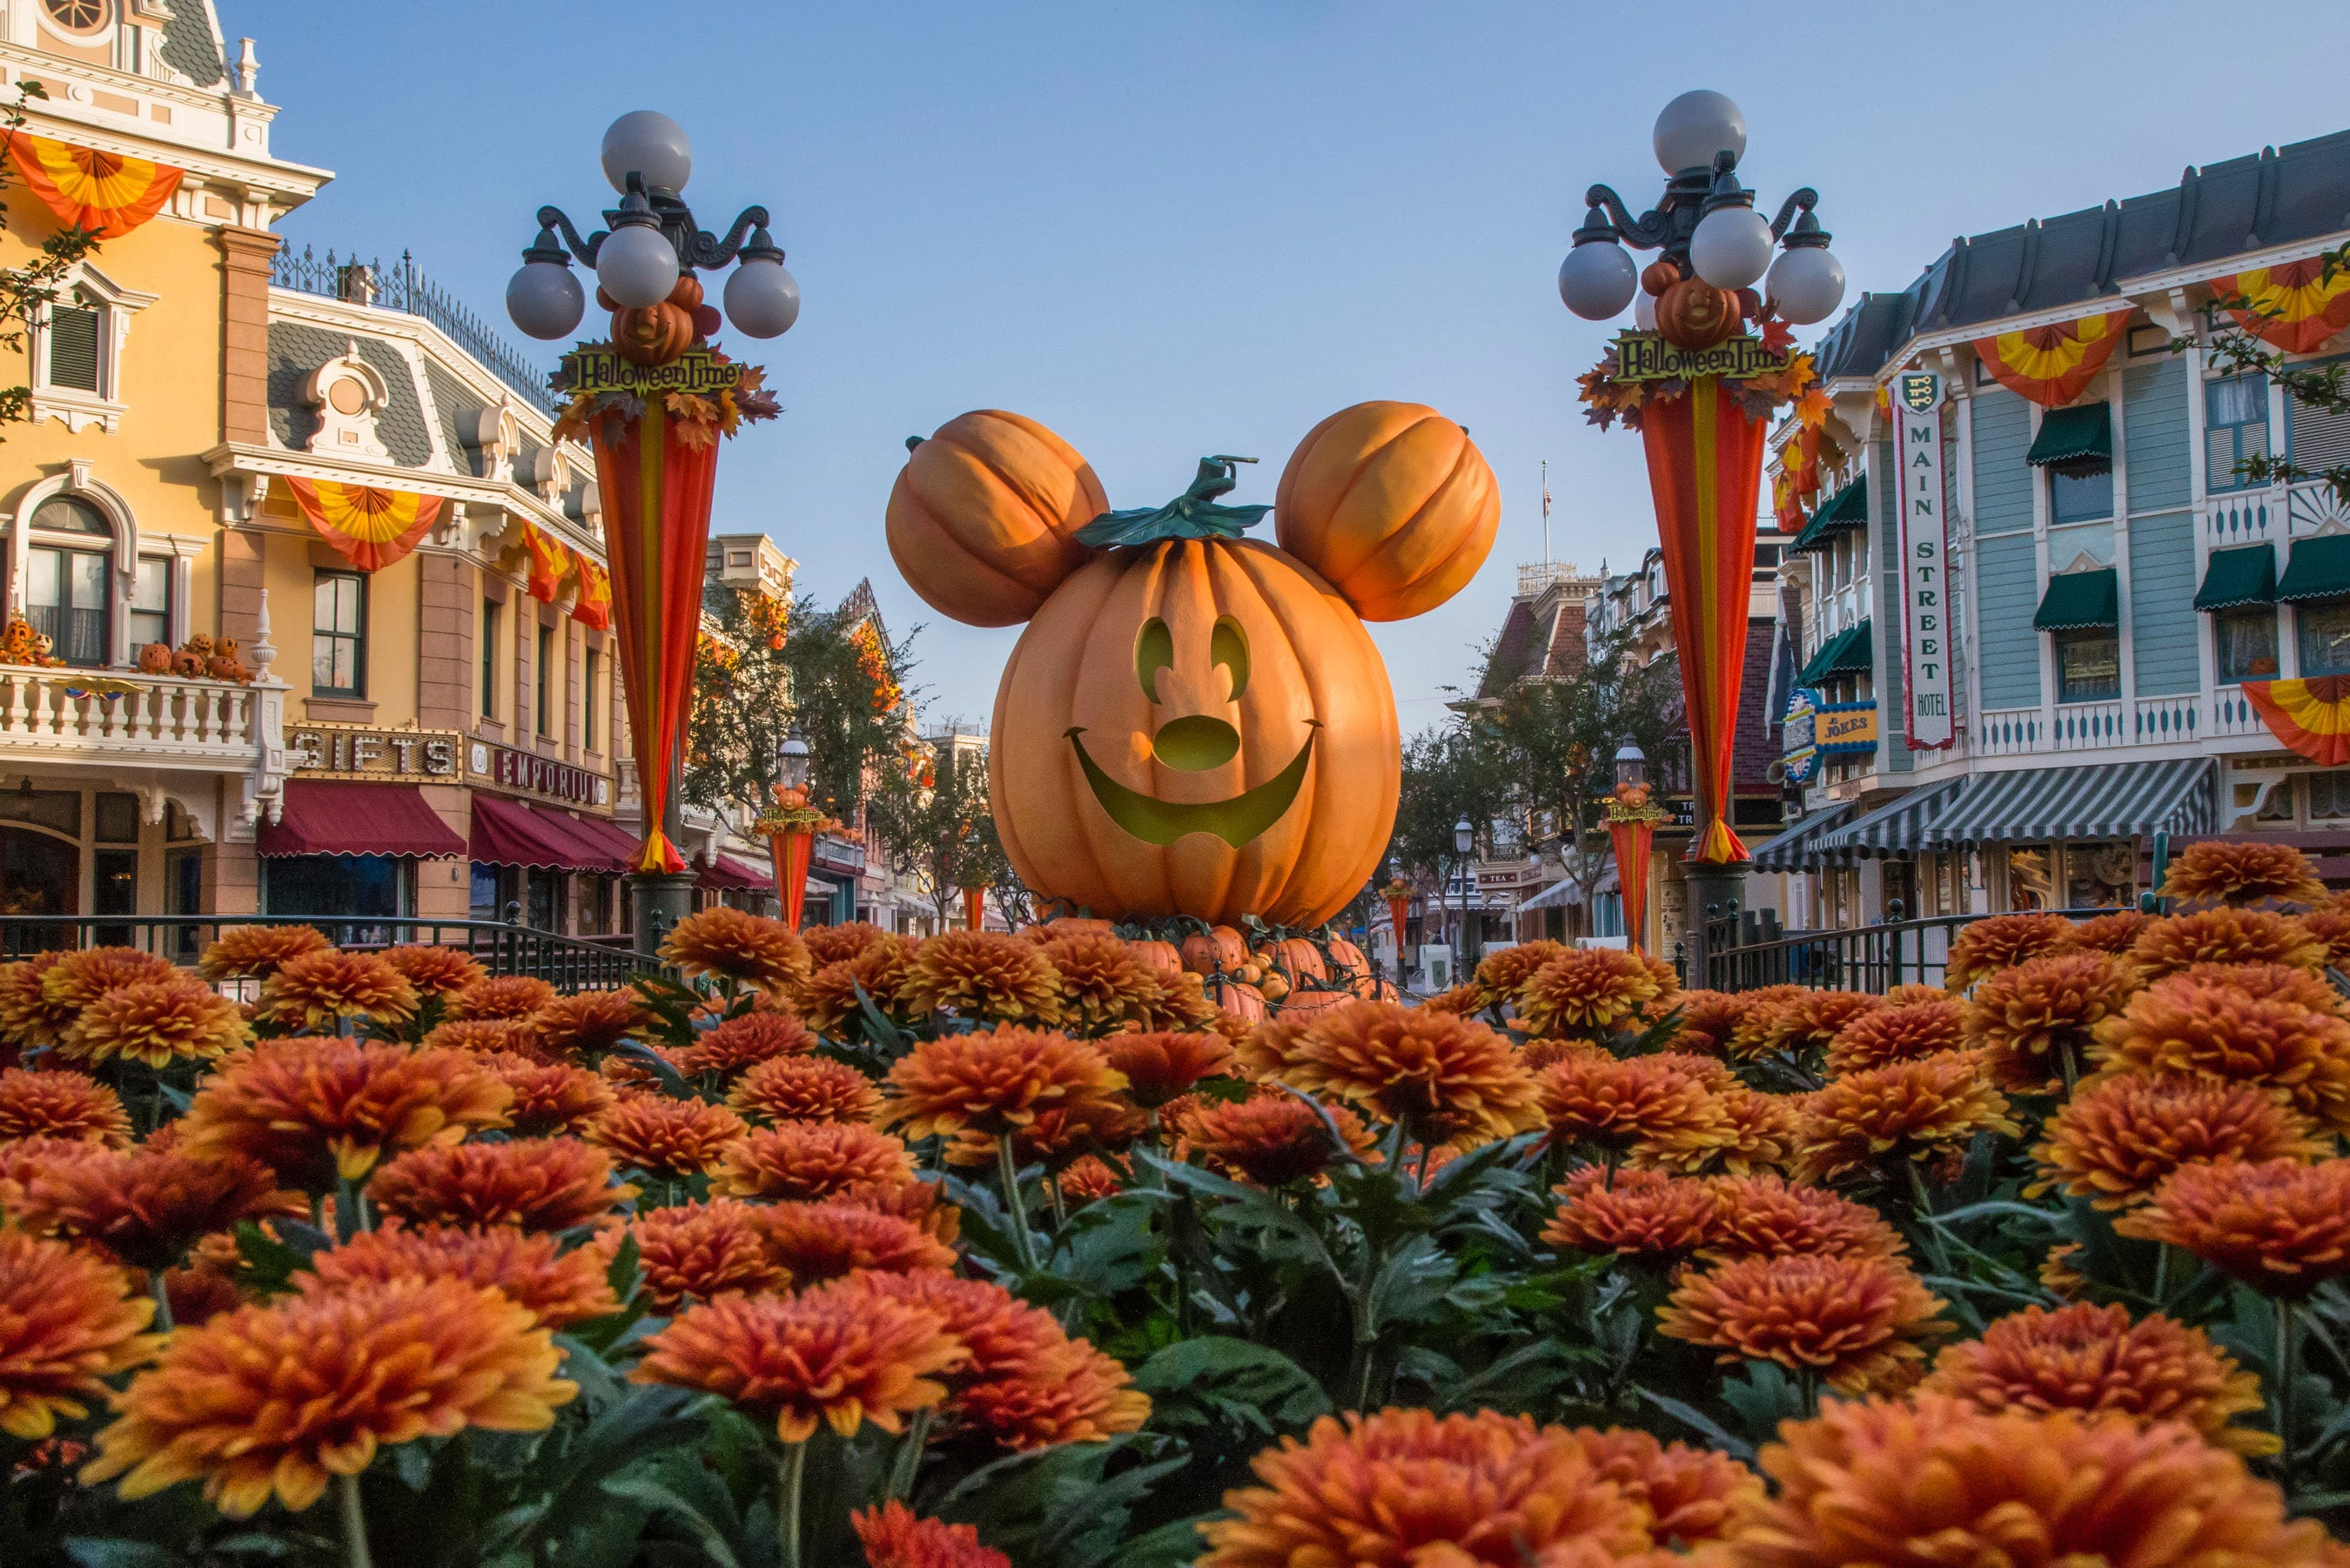 Giant Mickey Jack-O-Lantern surrounded by orange carnations on Main Street U.S.A.